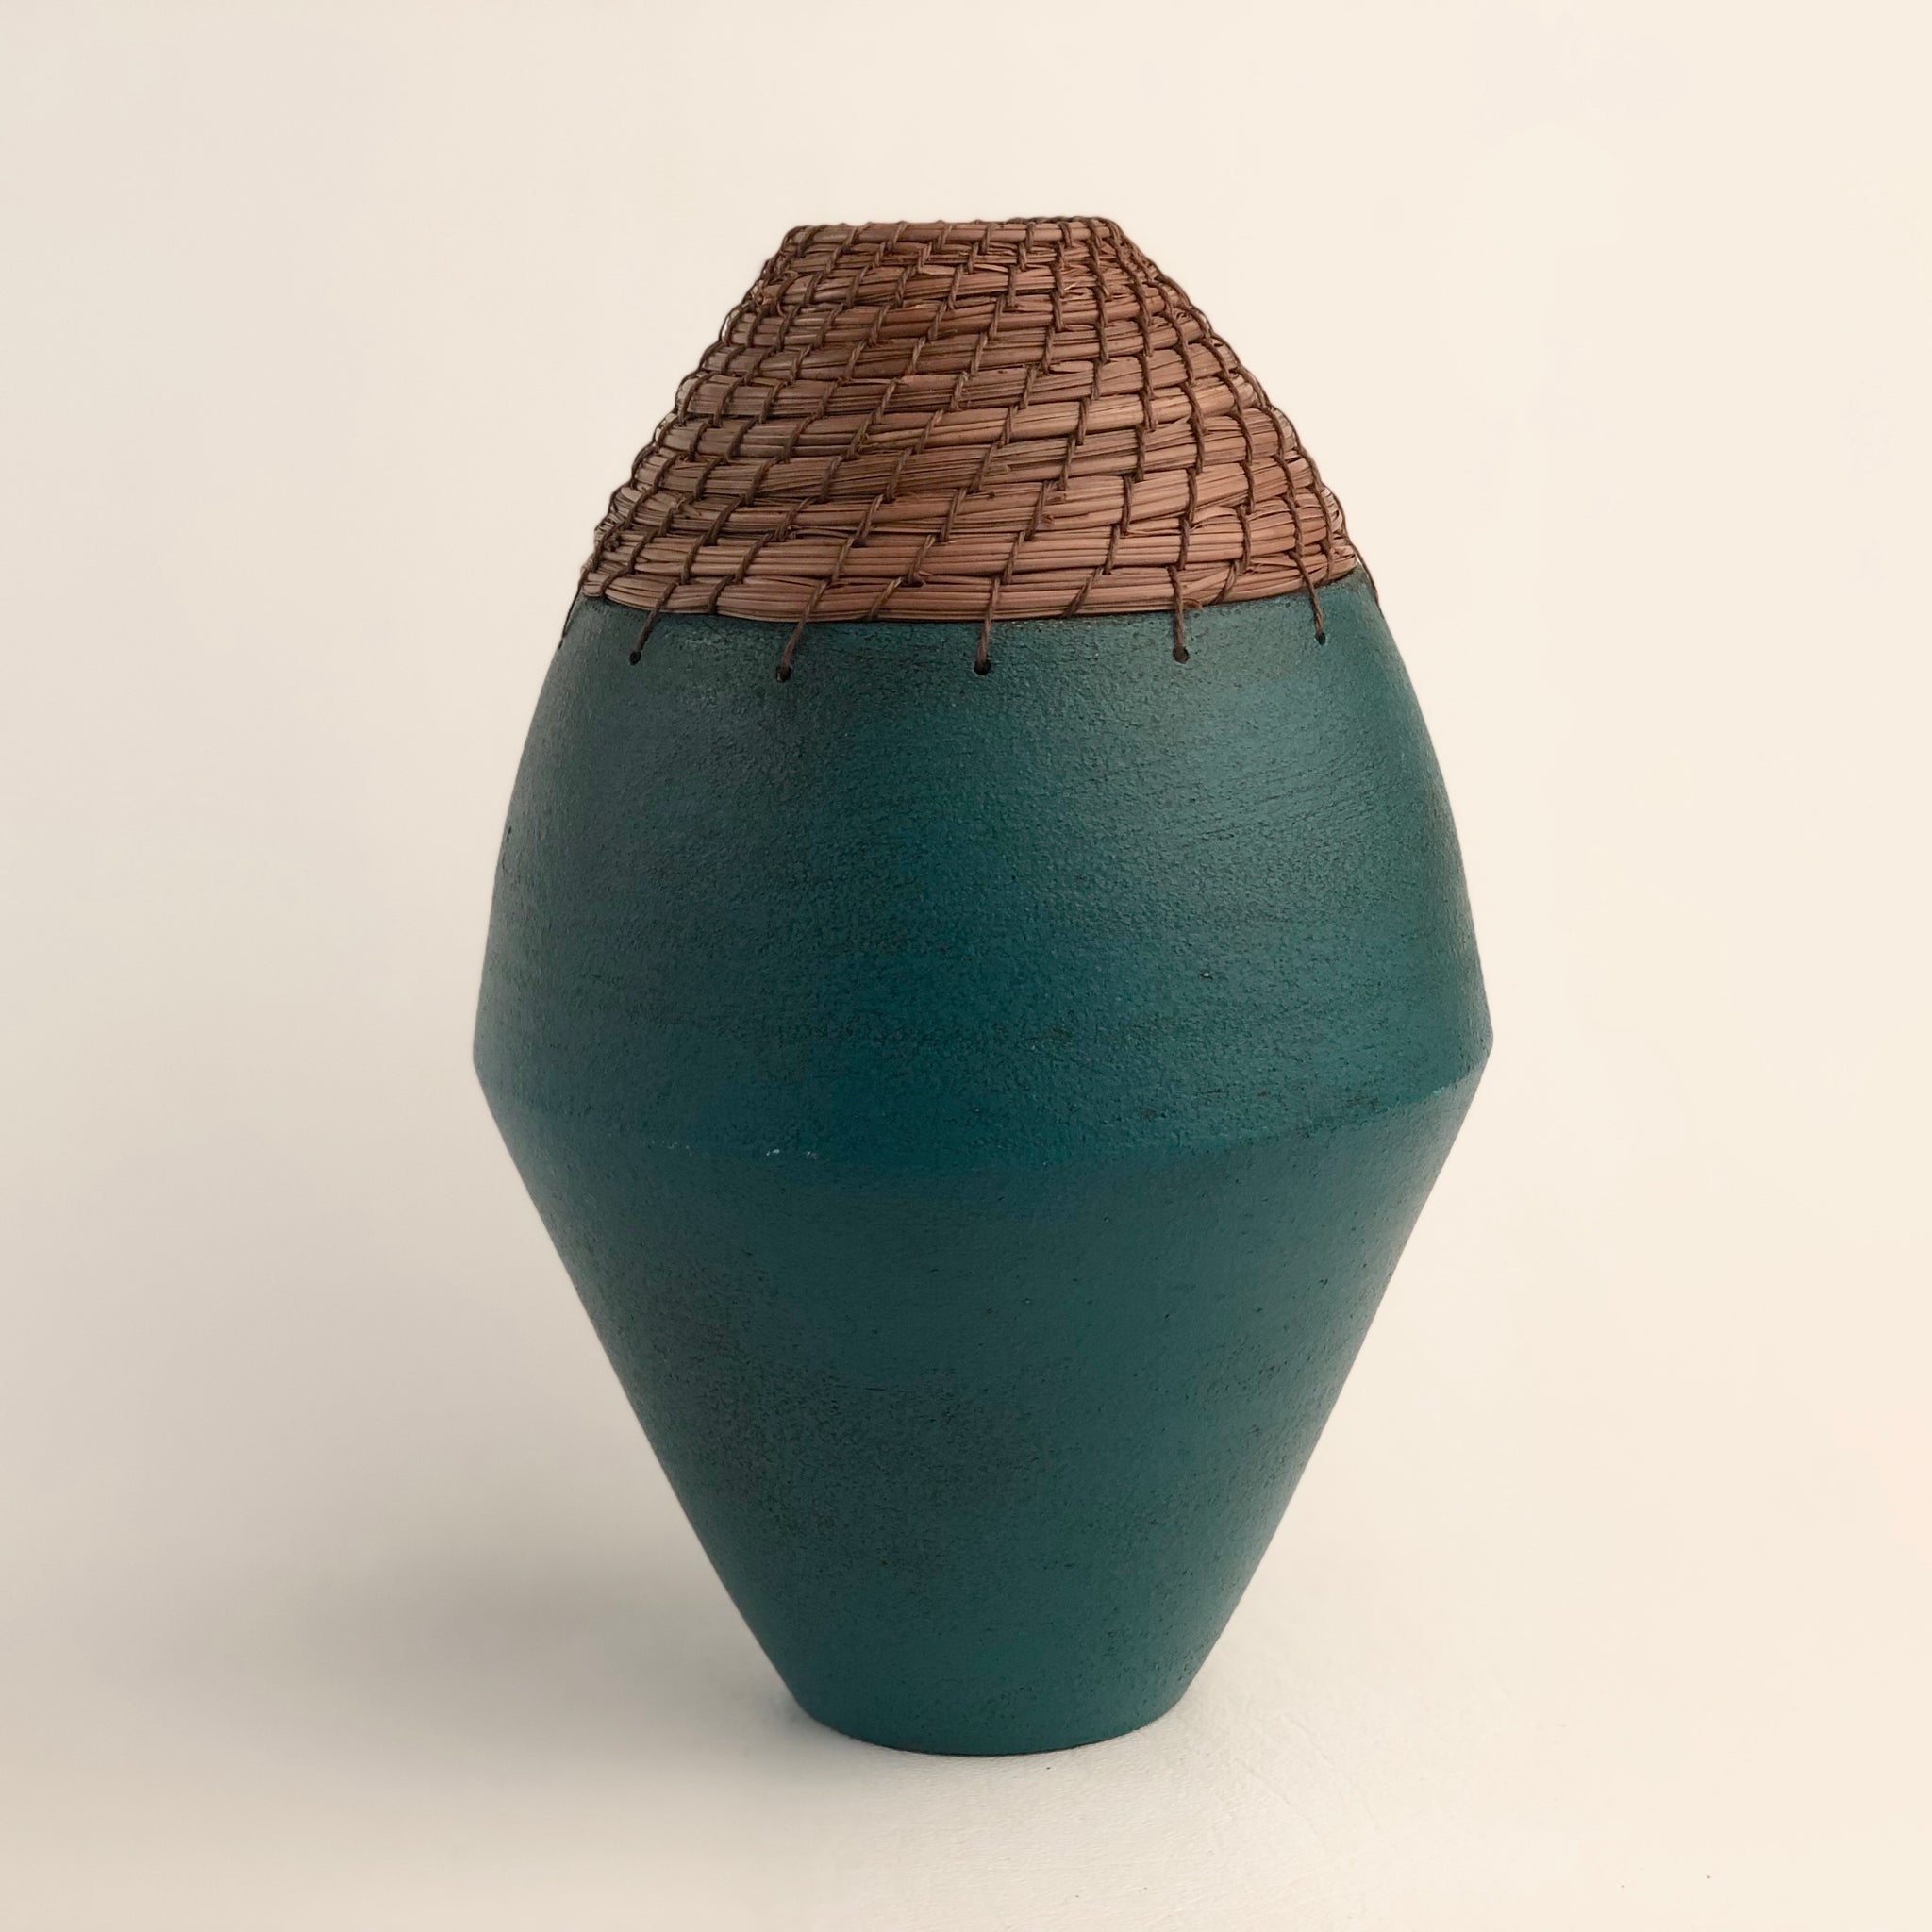 Teal diamond vase